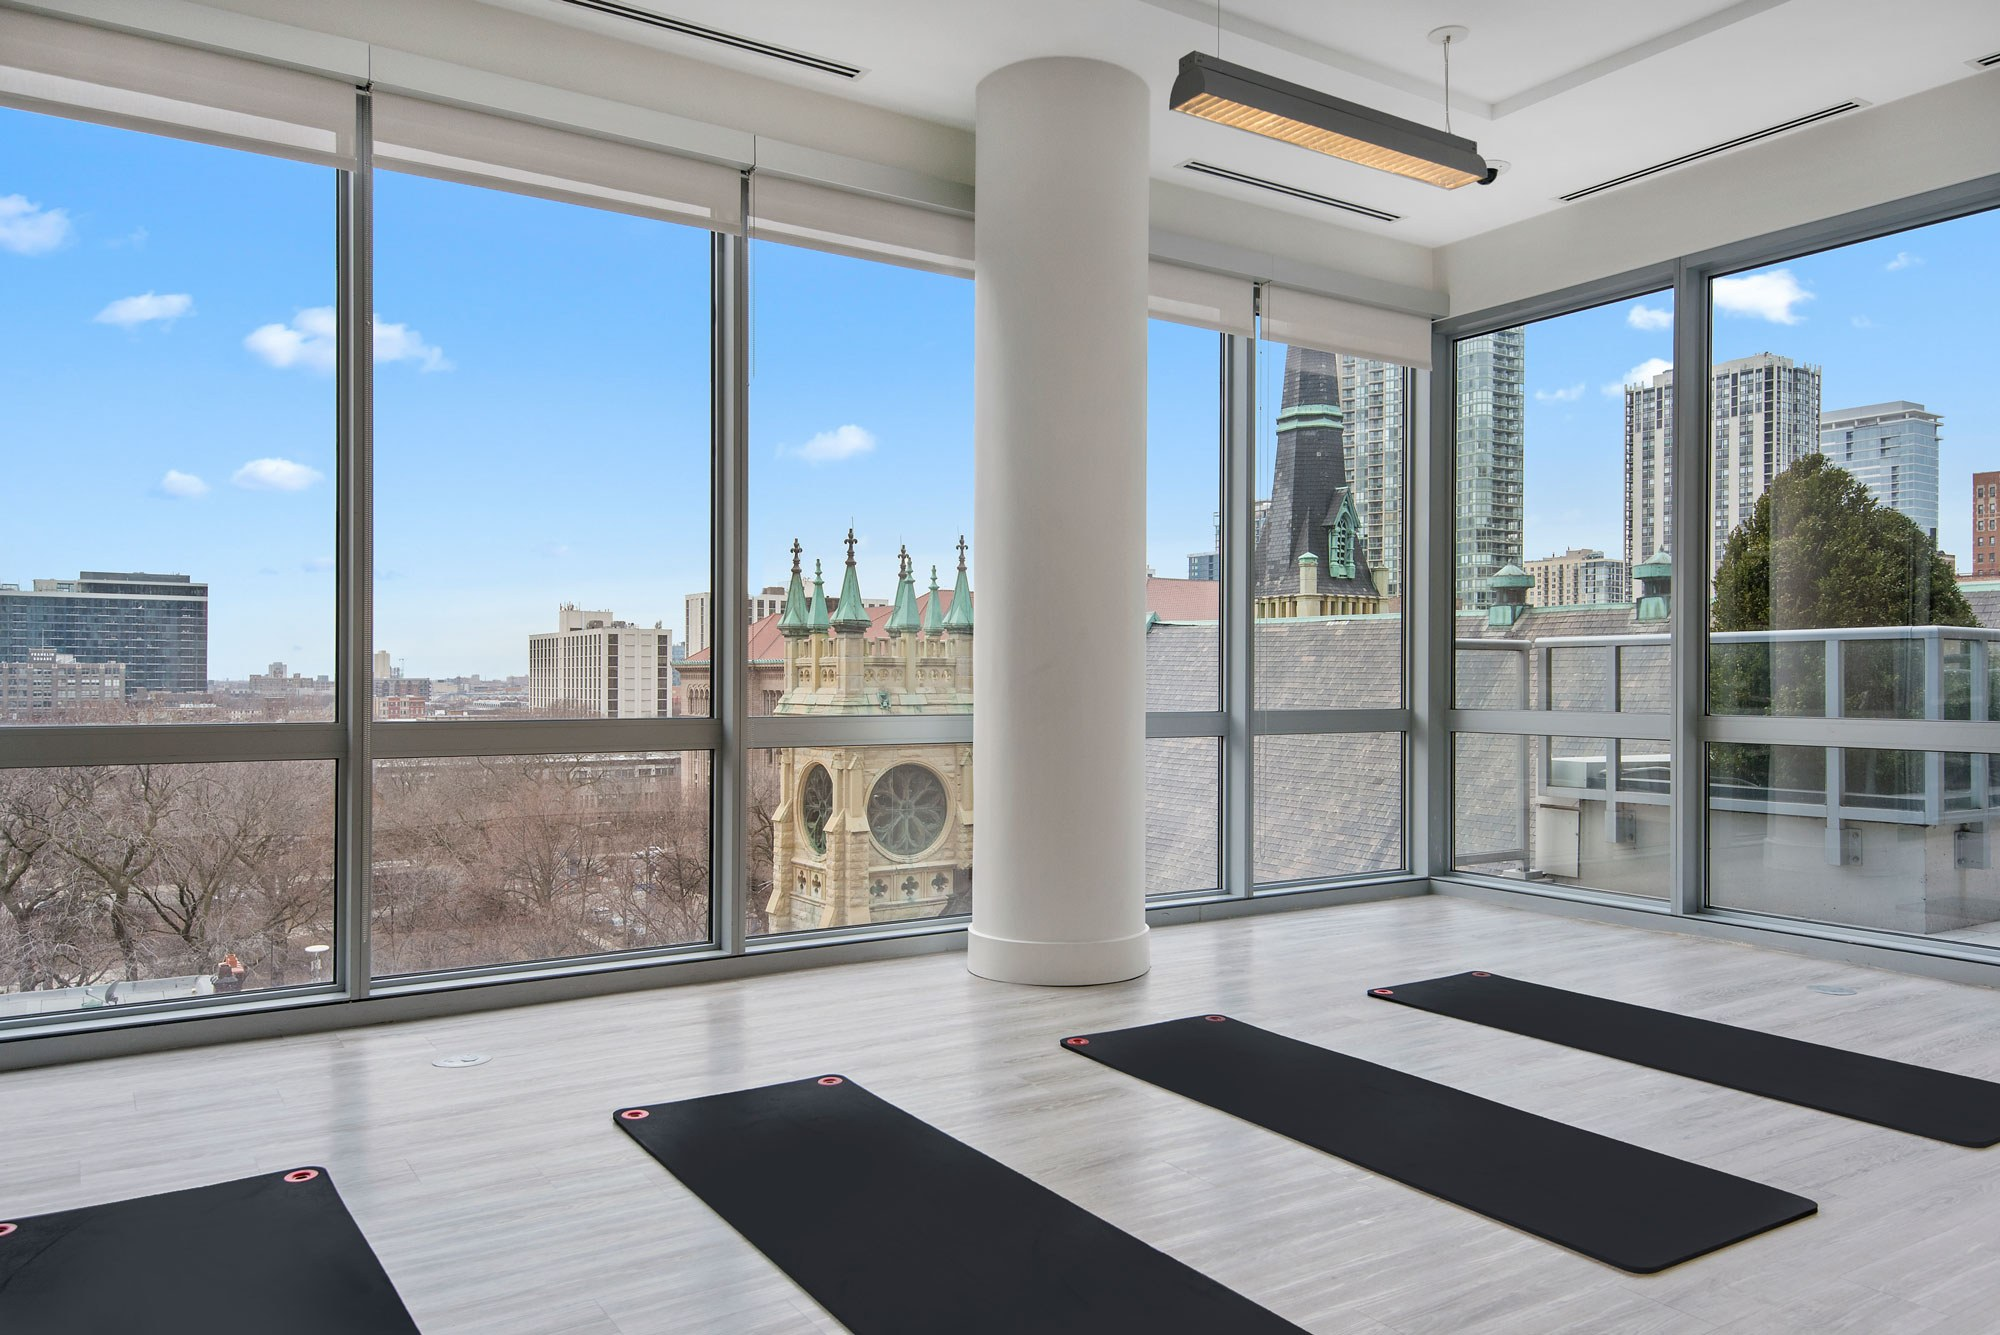 Views from the yoga room will free both body and mind.